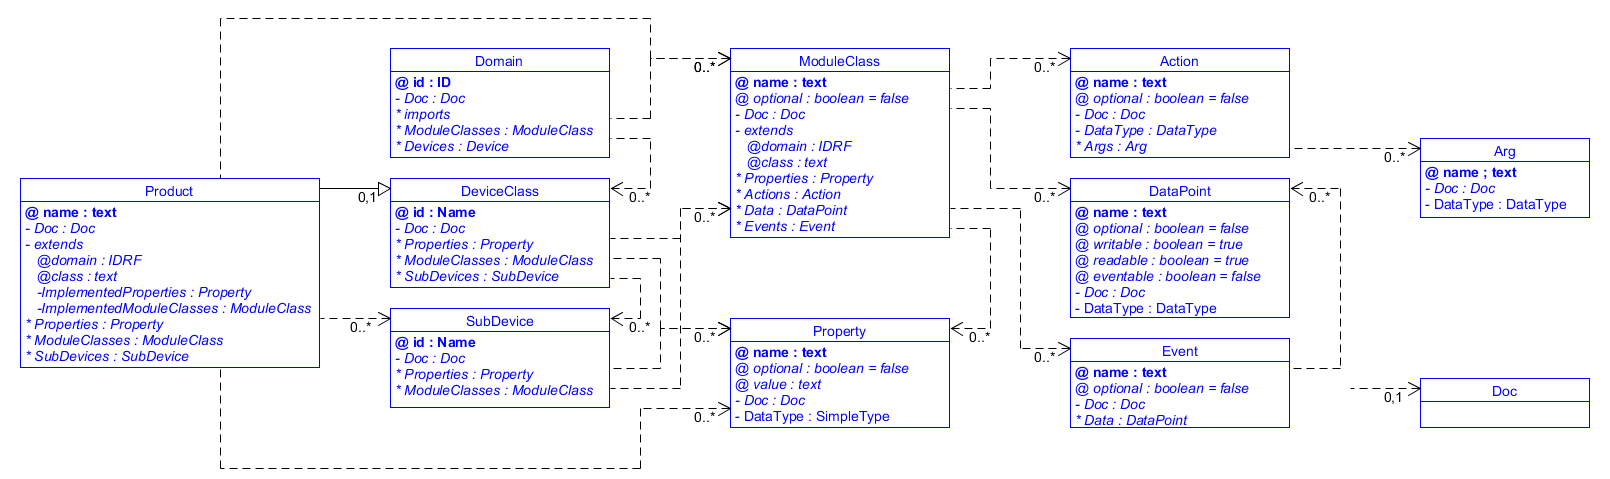 SDT/schema4.0/docs/images/SDT_simplified.png